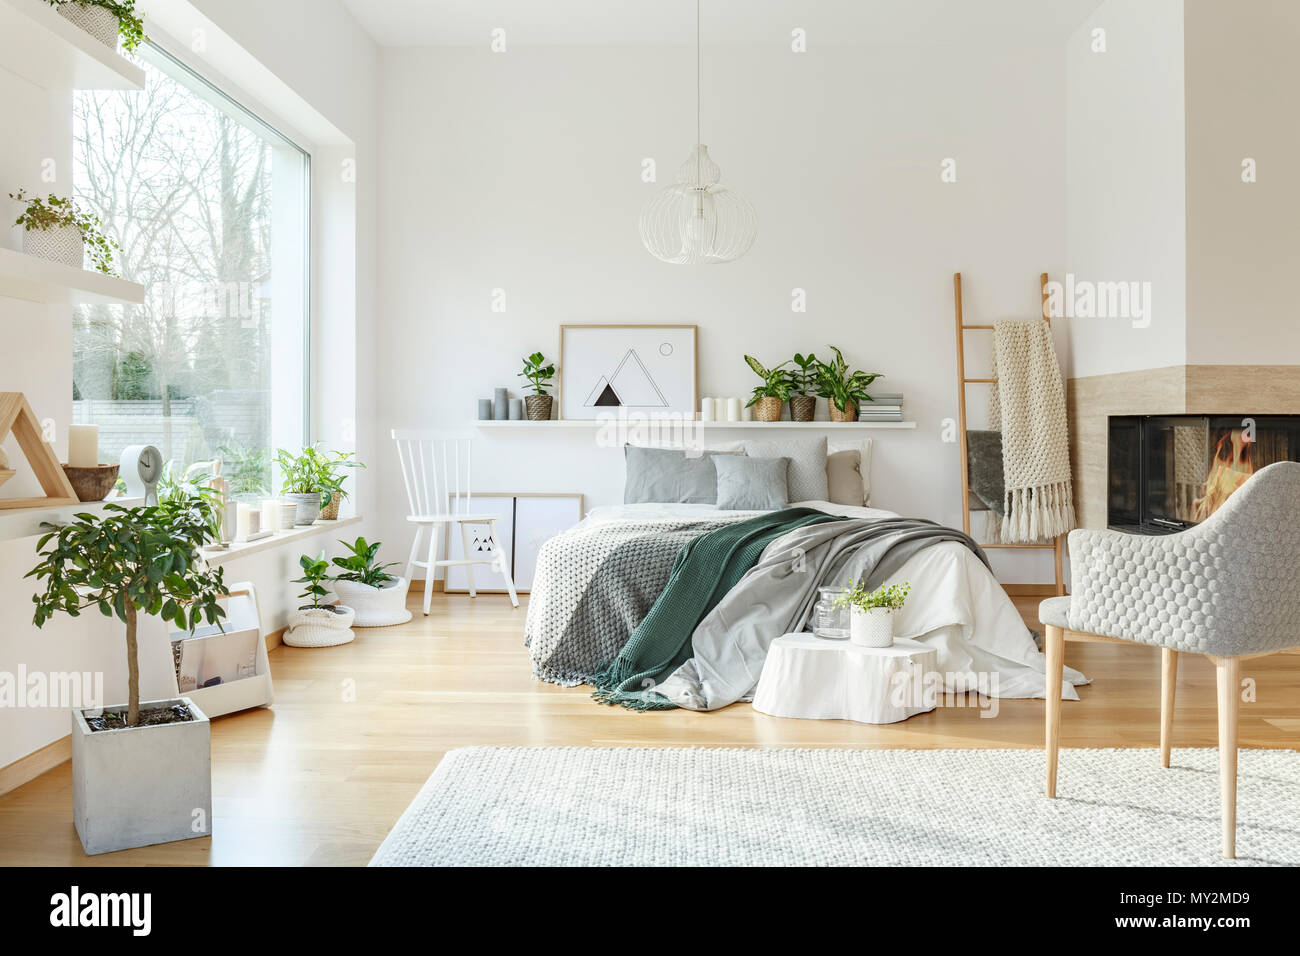 Plant and white armchair in cozy bedroom interior with green ...